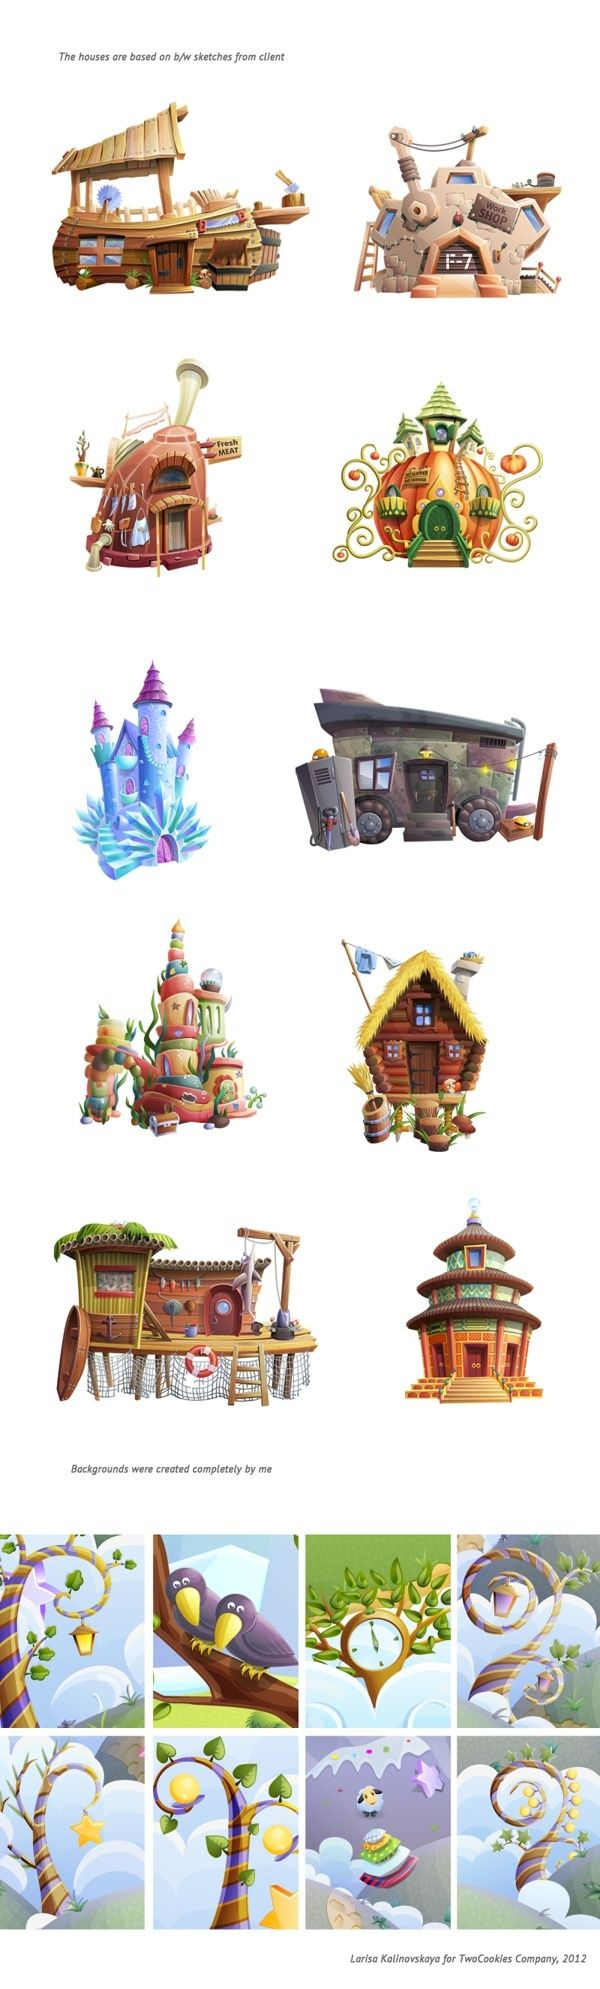 Great fantazie buildings design for mobile game - Happy Builder 2. Bui...